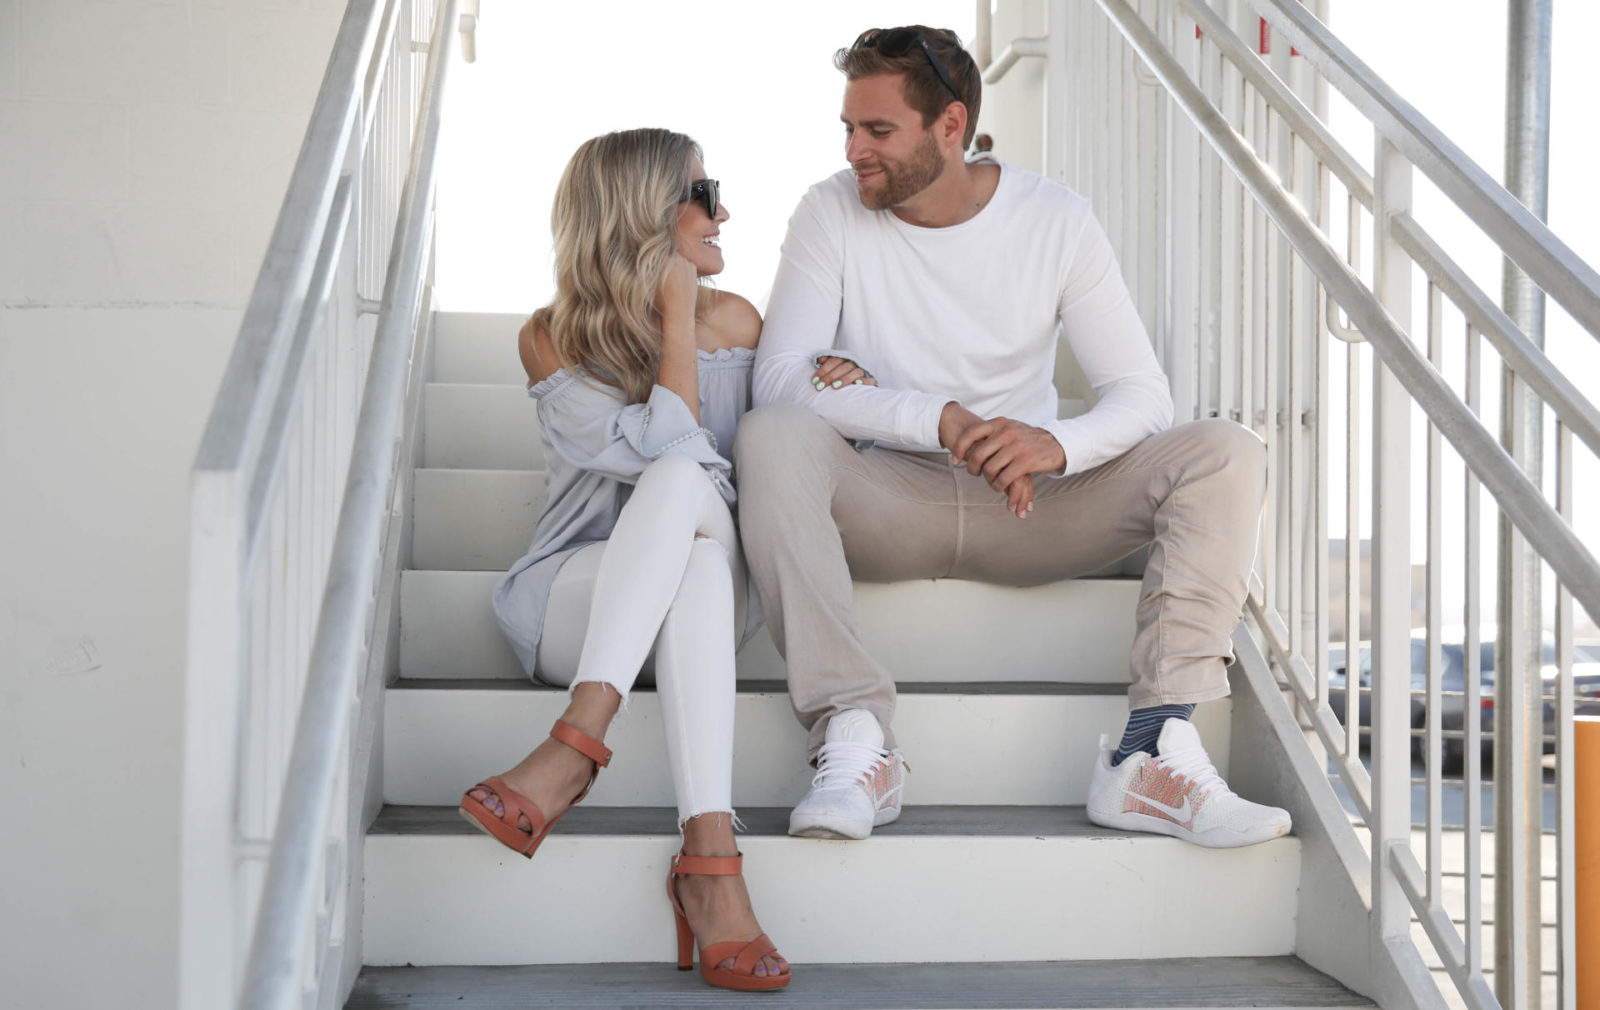 Him + Her: Neutral Outfits